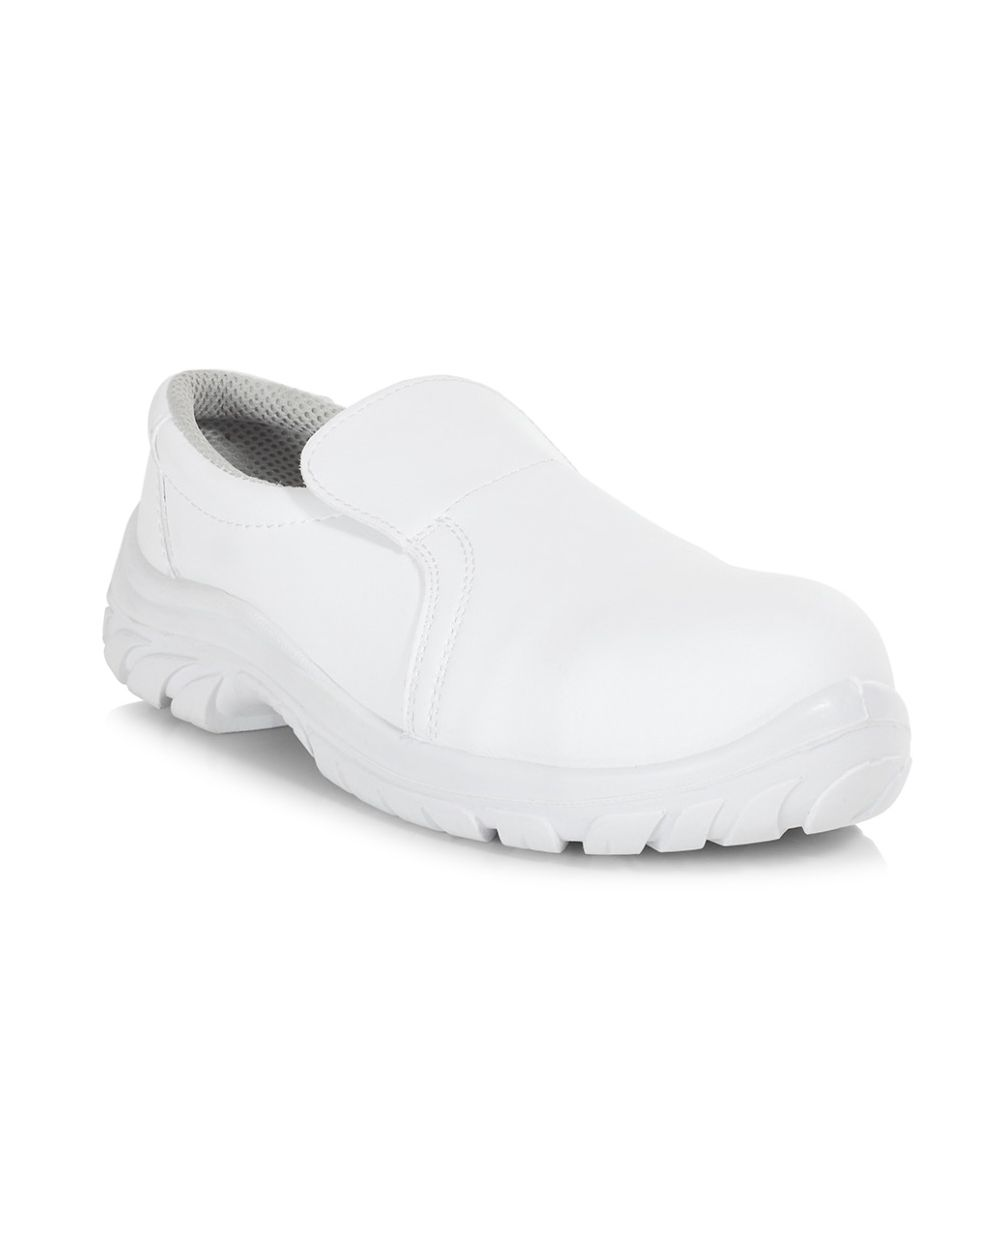 Baltix Low White Slip On Shoe